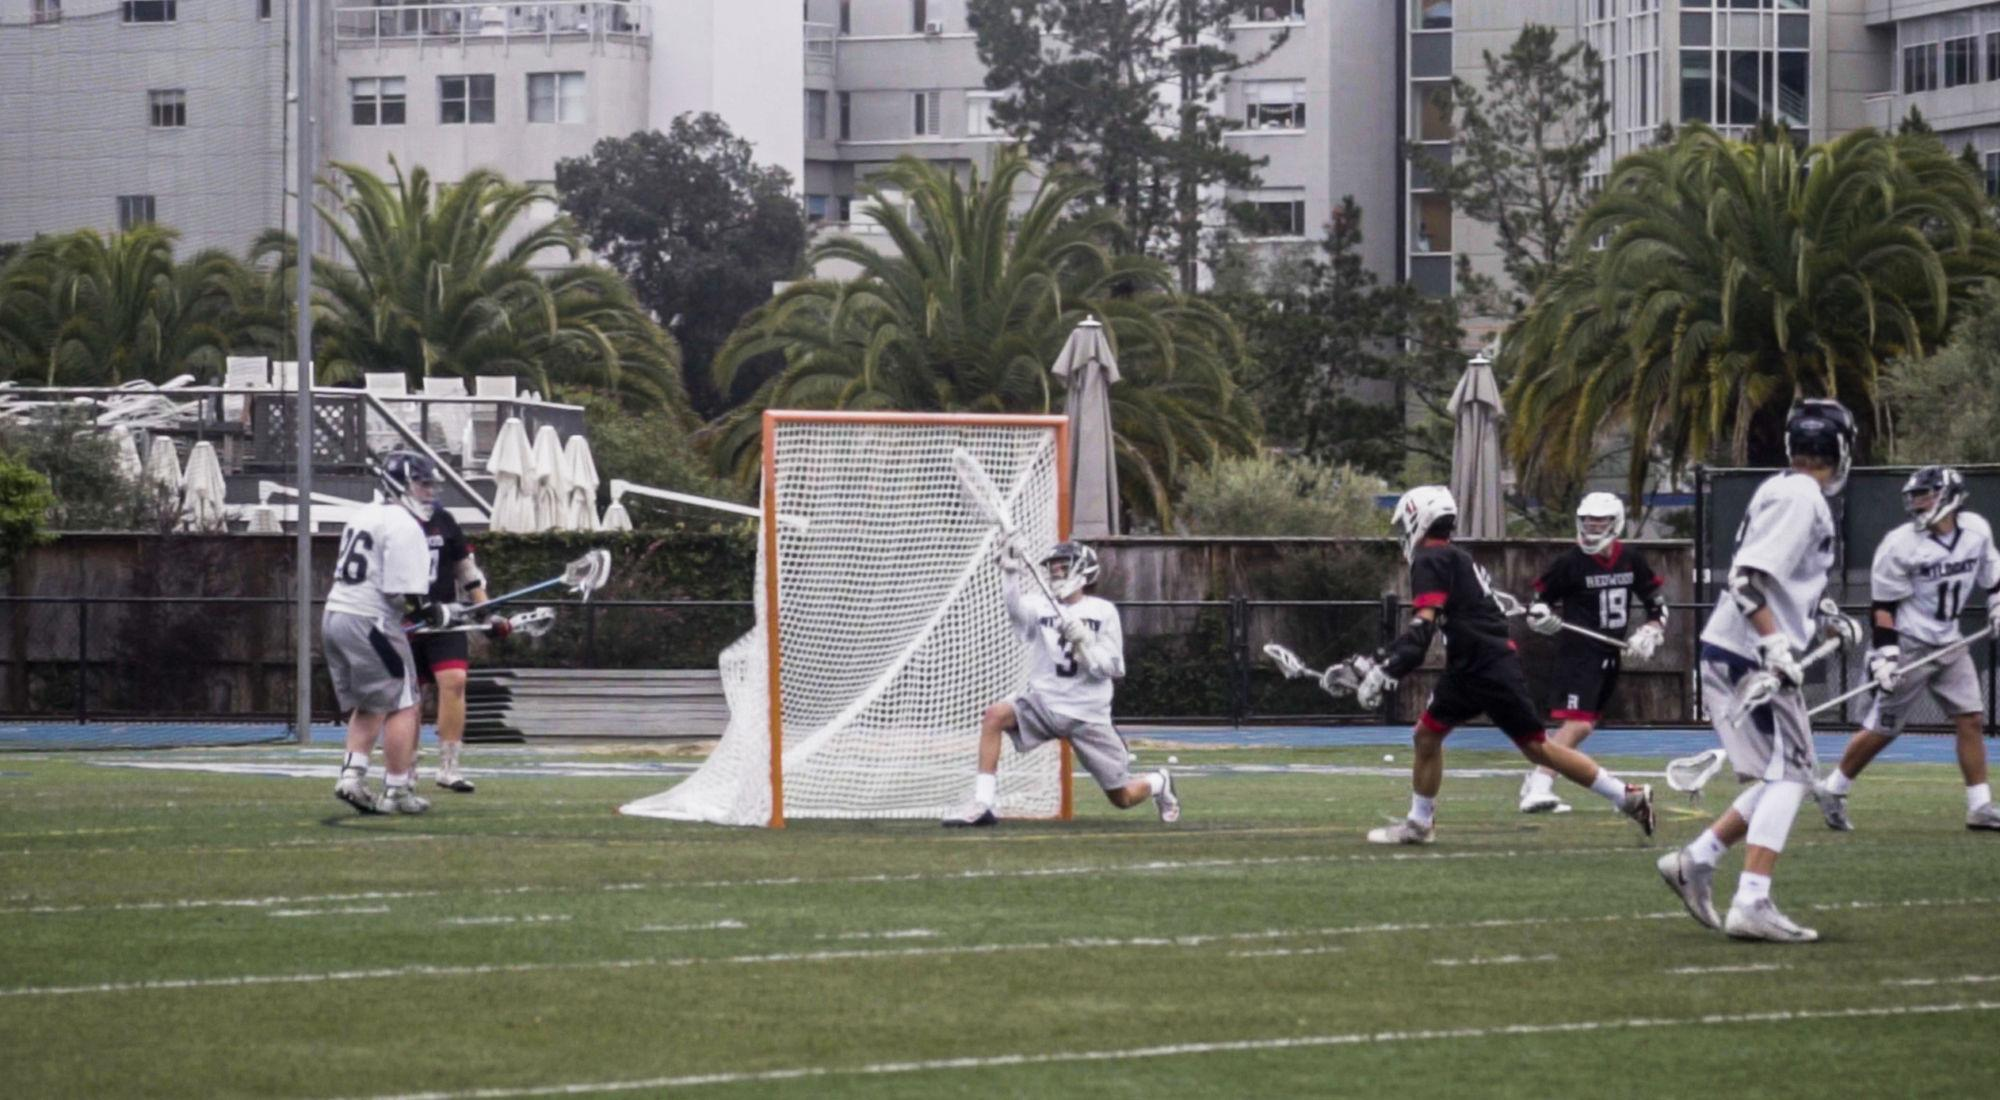 Boys' JV lacrosse brings home win over Marin Catholic